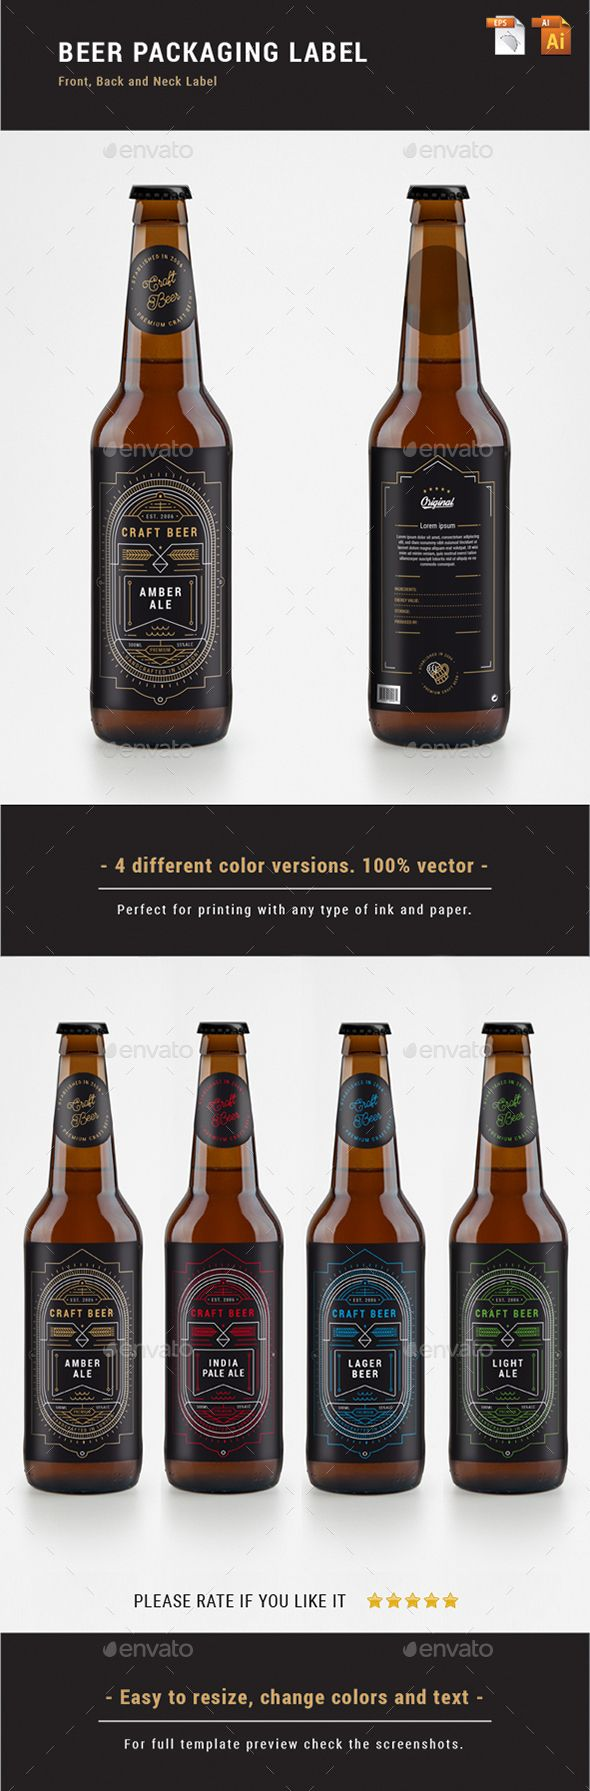 BEER PACKAGING LABEL - Linear Art Print ready beer label. Four different color versions. Front, Back and Neck Label. Easily editable. Fully vector files. Text/Font and Colors can be altered as needed. All Image are in vector format, so can customise easily. It can be used in Similar product too. Mockups are only for representational purposes.